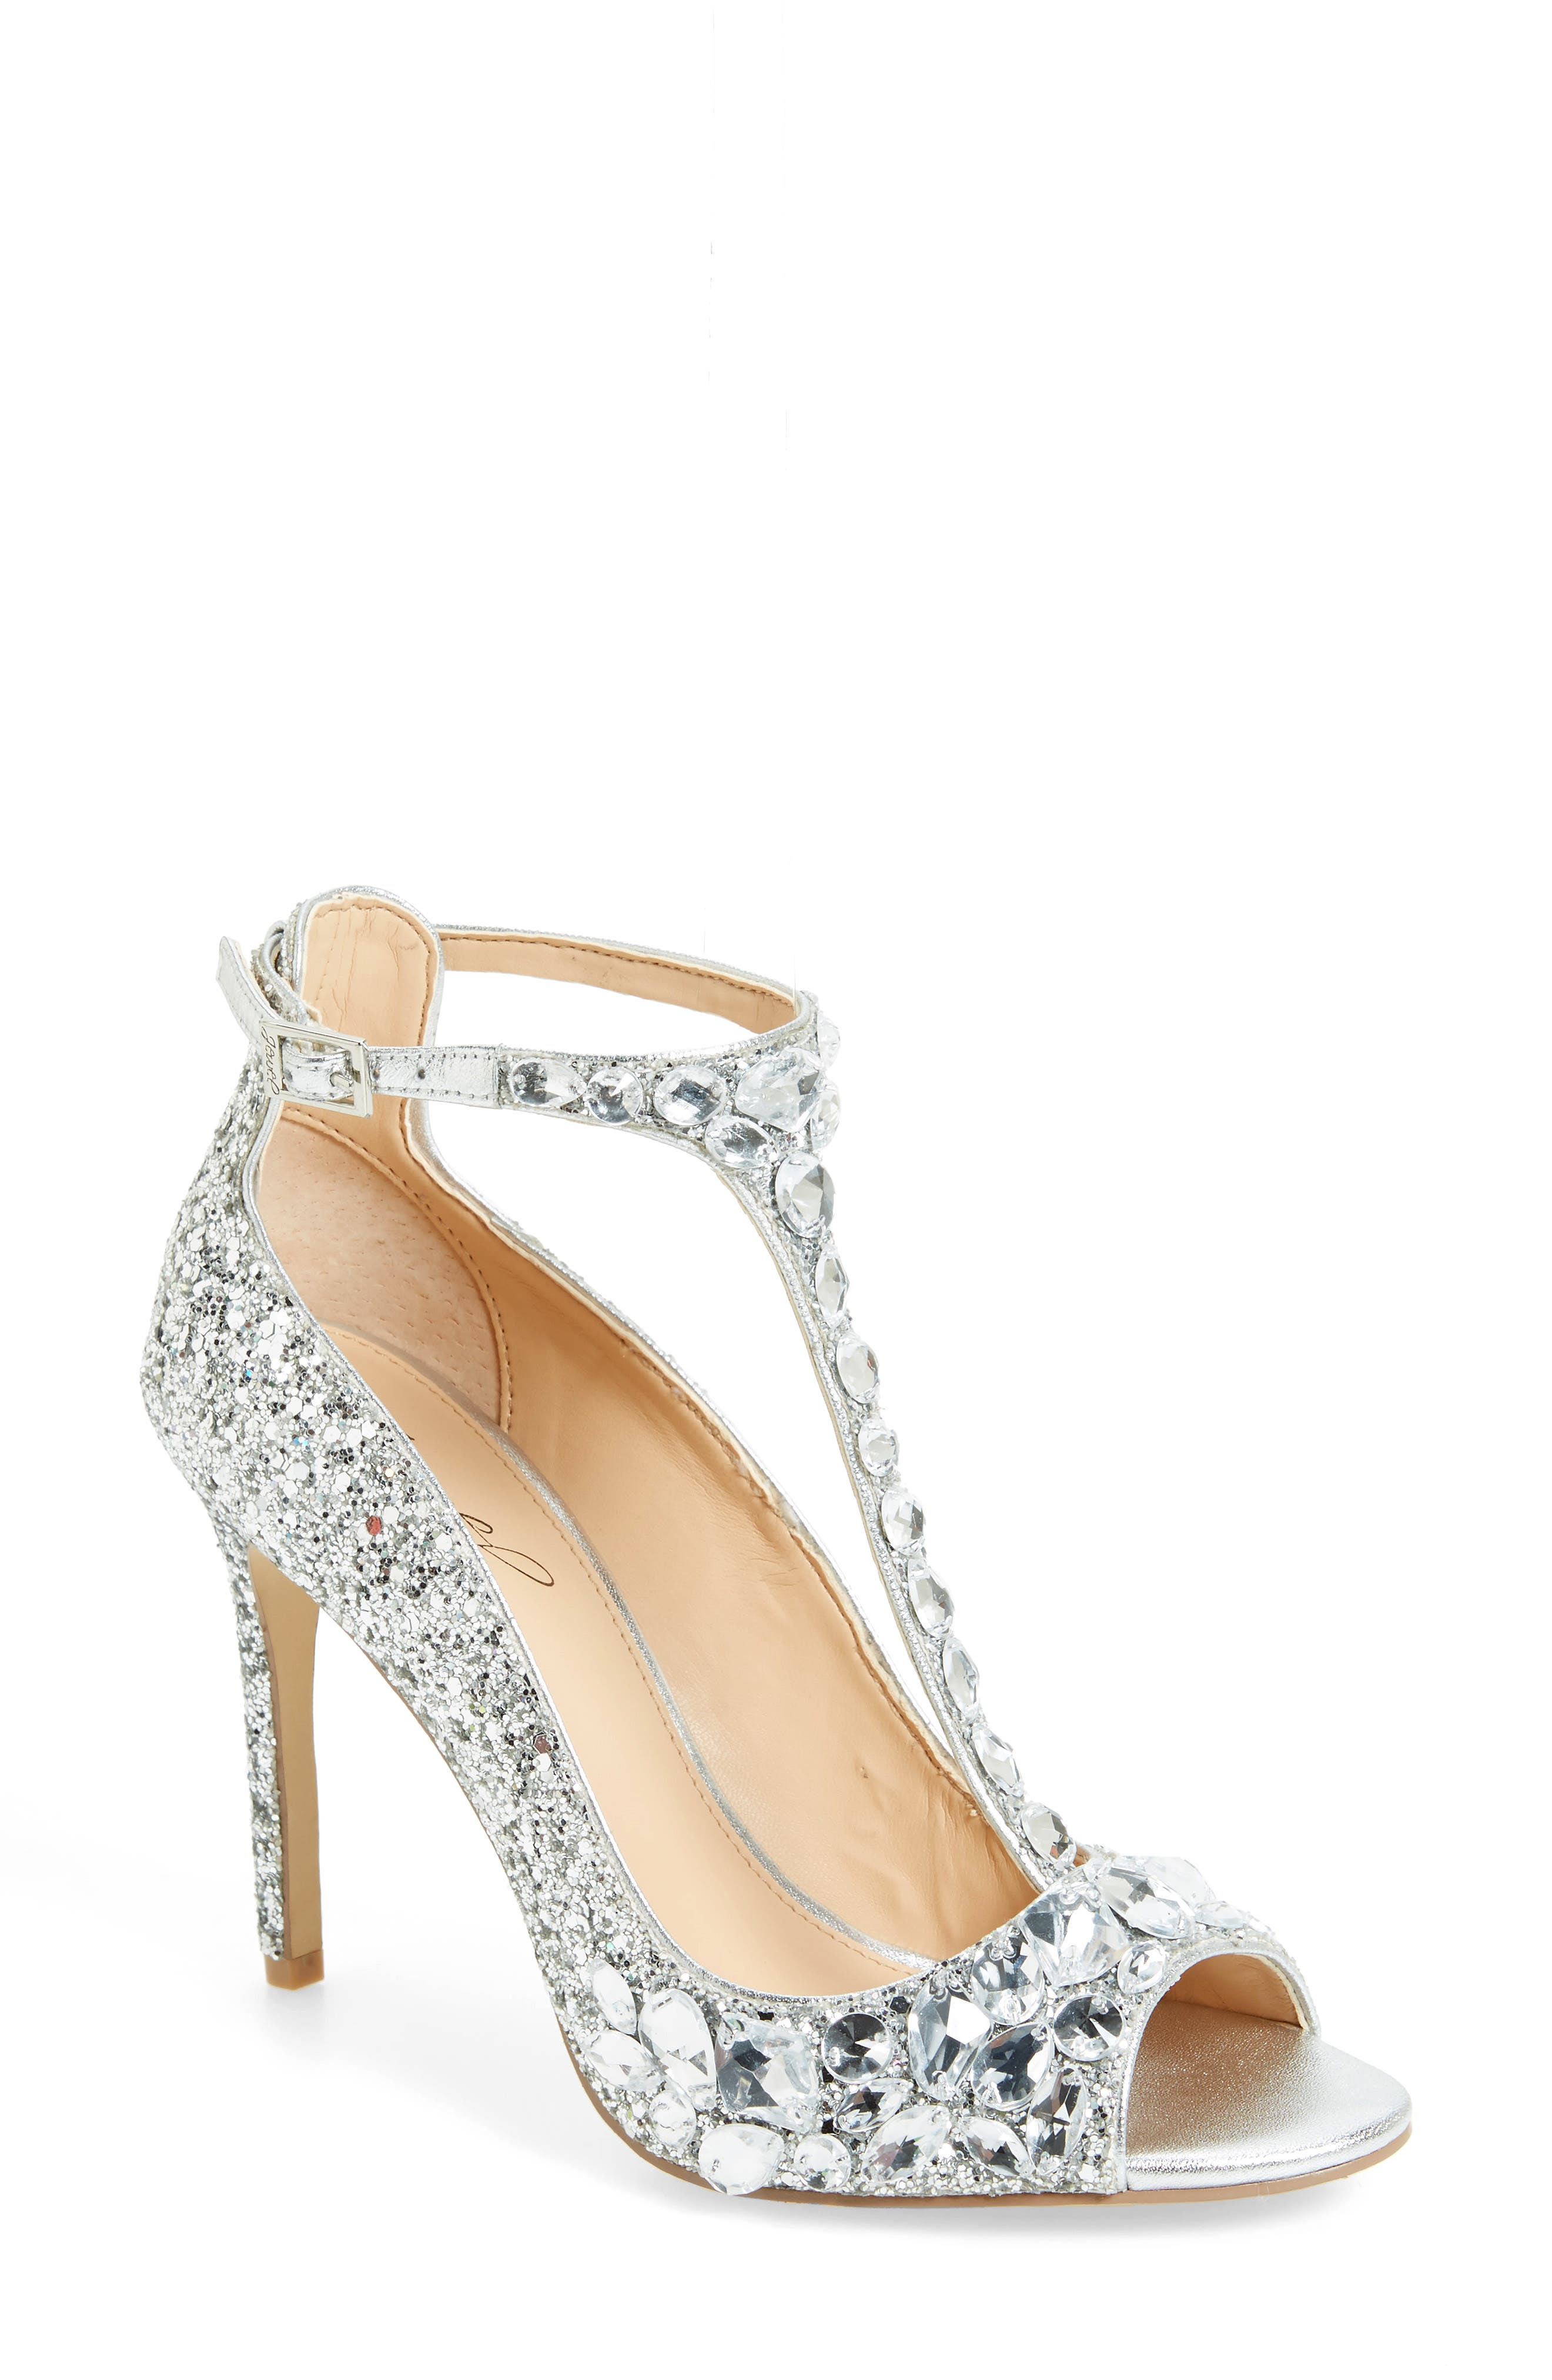 Conroy Embellished T-Strap Pump,                         Main,                         color, SILVER